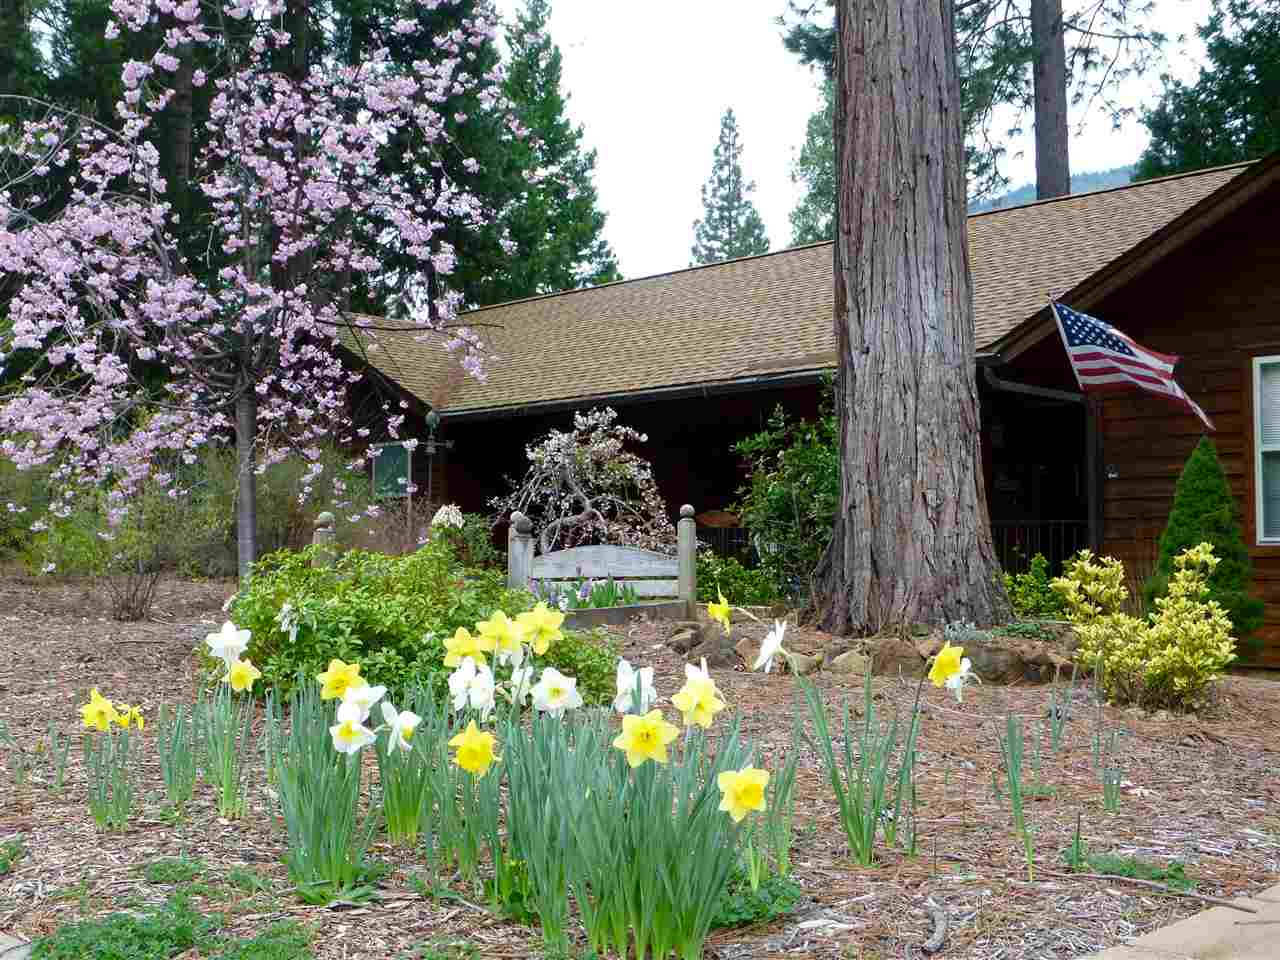 Mountain home nestled in the big trees……If you are ready for a mountain life style, this 1860 sf 3 bed/2 bath home is located minutes from Mt. Shasta, Sacramento River, championship golf course and board and ski park.  This well-appointed home features luxury plank vinyl flooring, natural river rock fireplace, and granite hearth, open floor plan with knotty pine ceiling. The large kitchen offers special lighting,  lots of storage and separate pantry. This home also sports a 600 sf unfinished basement, oversized garage and is wired for a generator. This alpine home is fabulous for indoor and outdoor entertaining with low maintenance landscaping and a variety of trees and privacy.